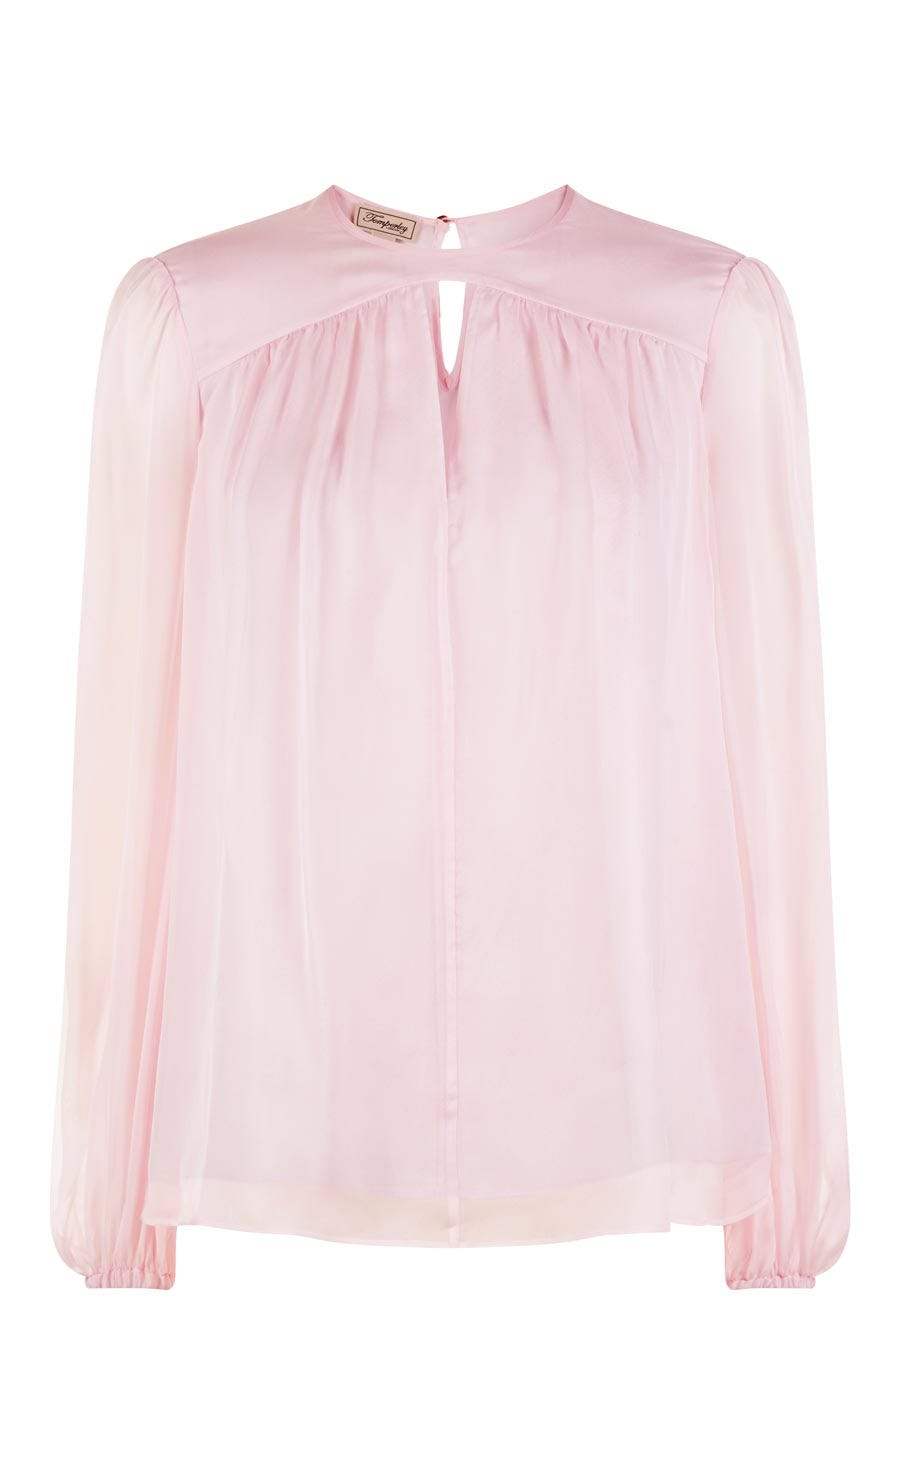 Lullaby blouse